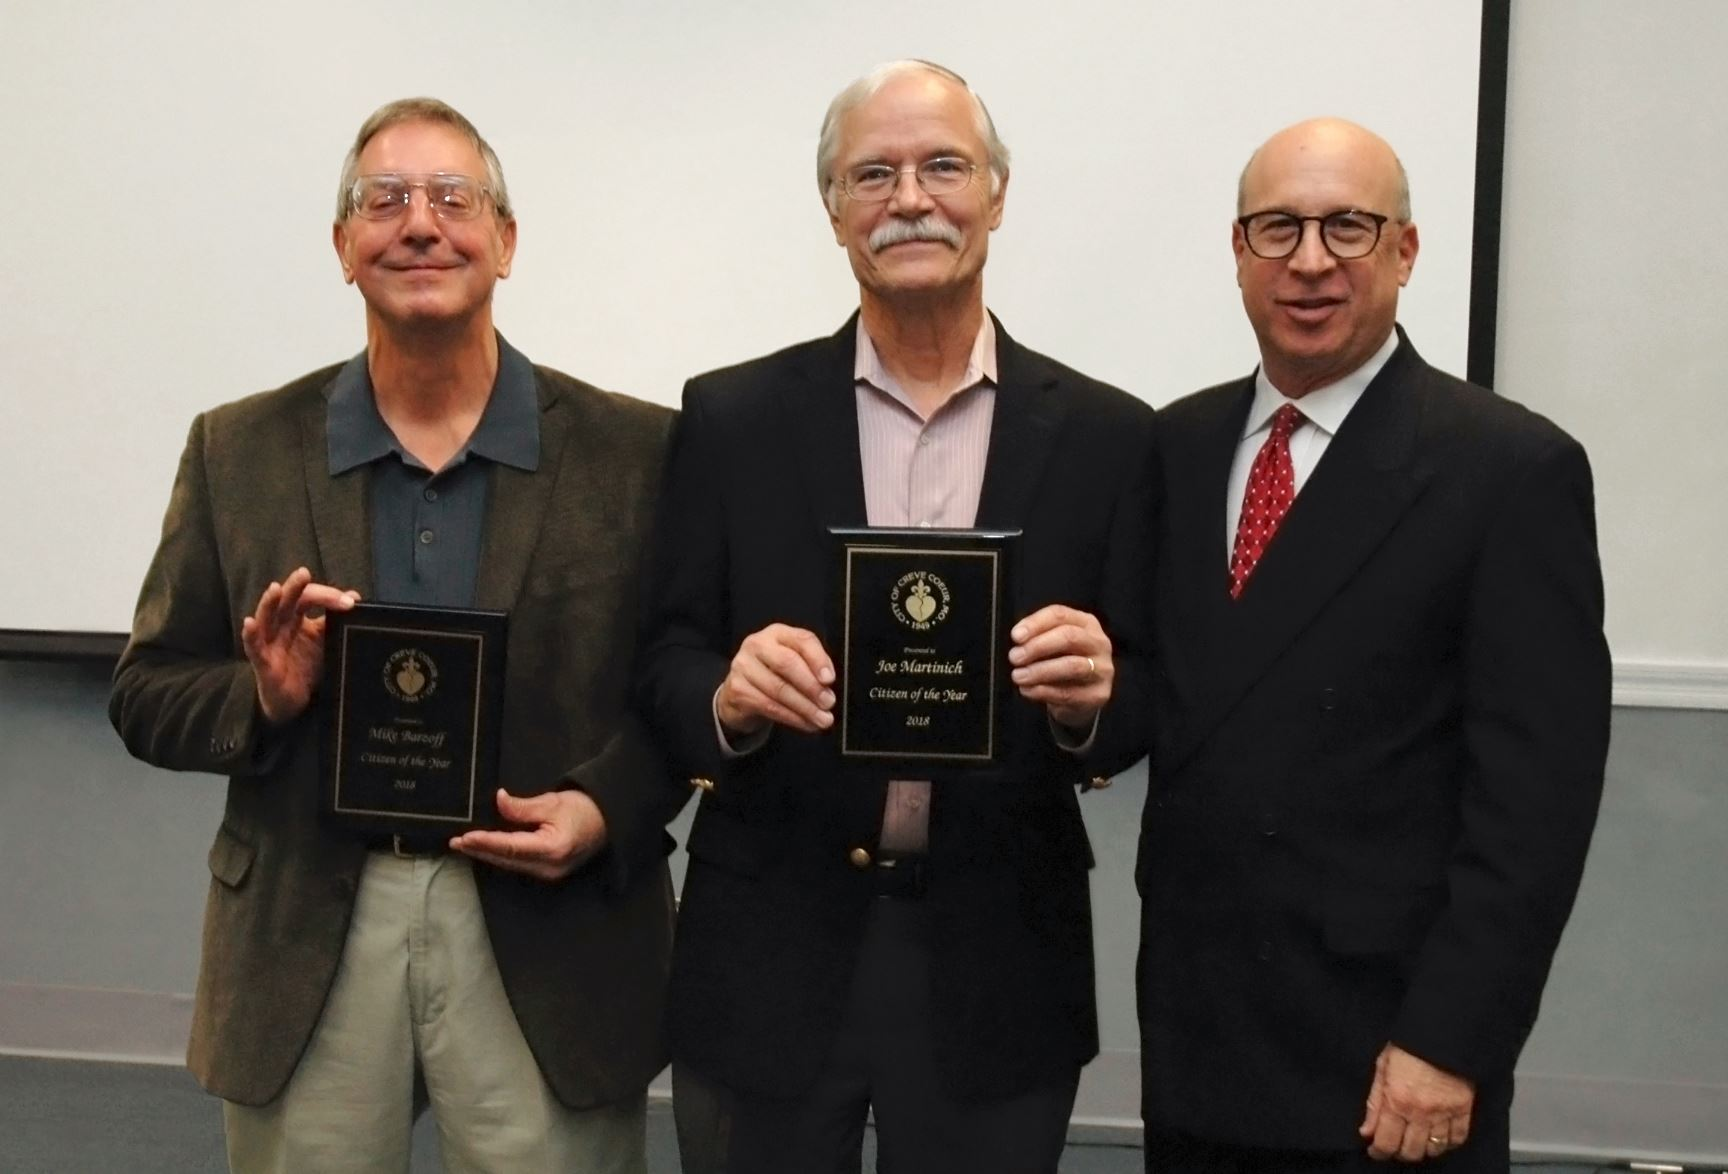 Citizens of the Year 2018 Mike Barzoff and Joe Martinich with Creve Coeur Mayor Barry Glantz